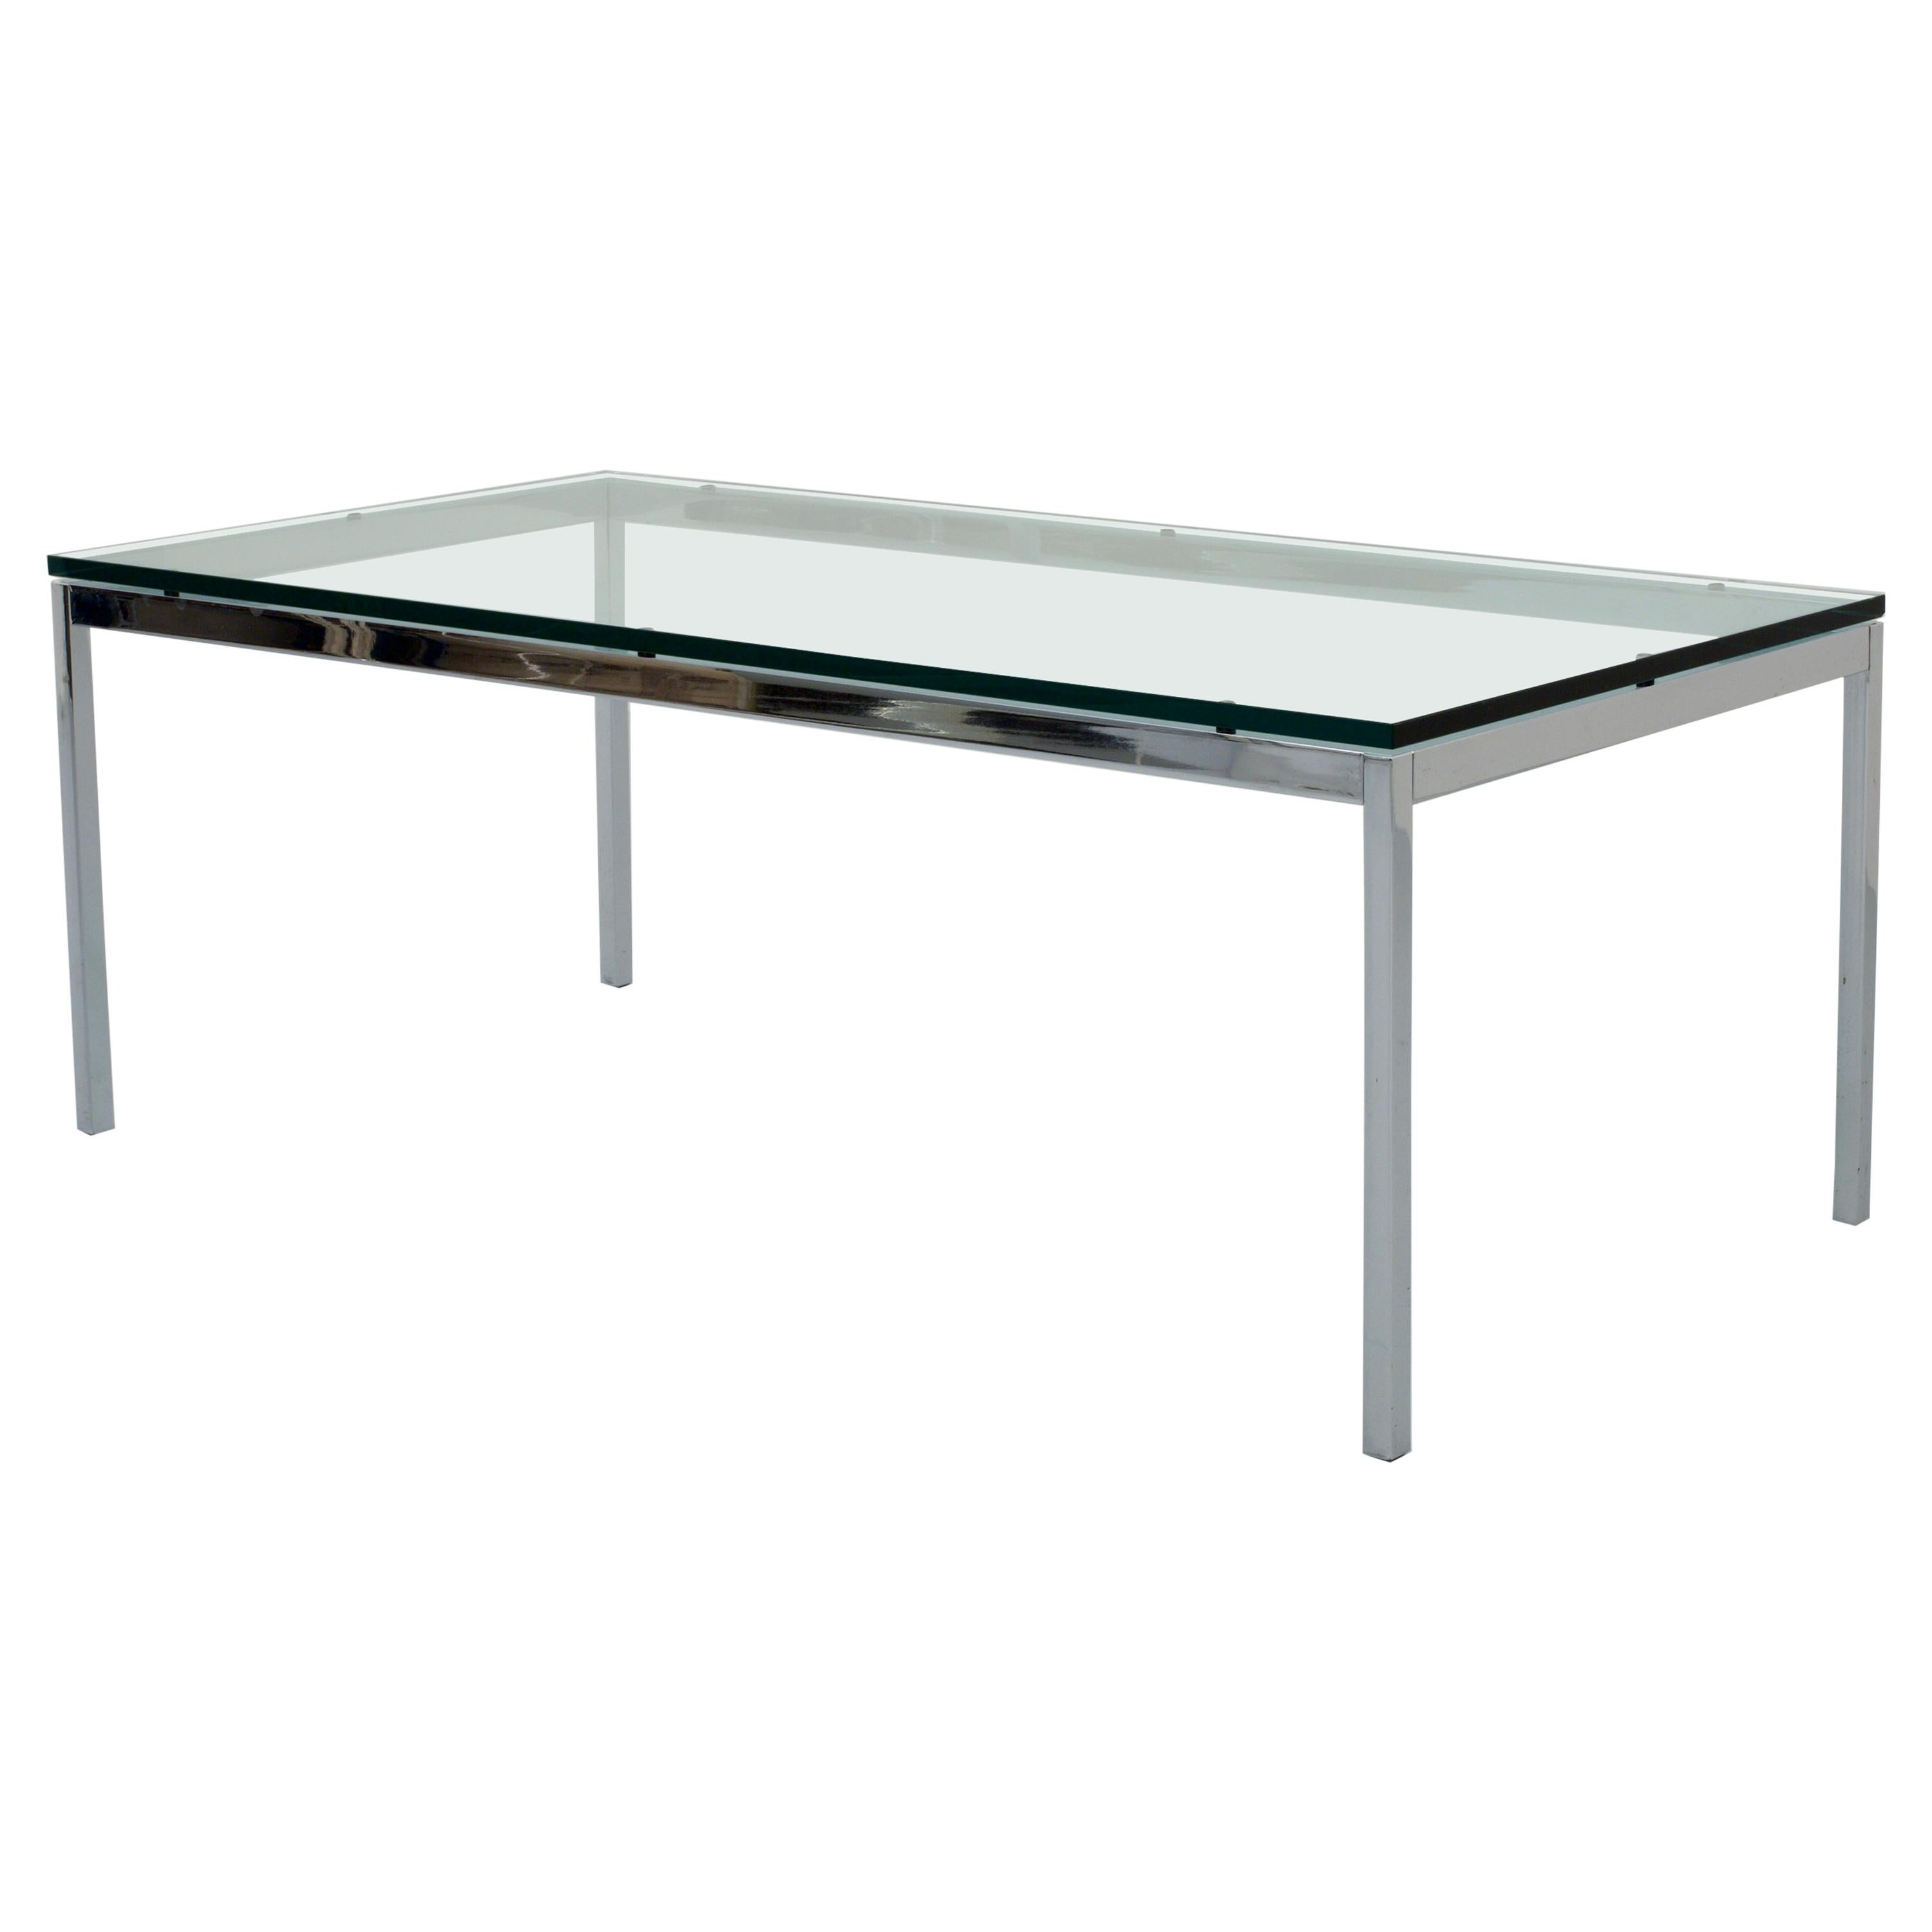 Florence Knoll Coffee Table in Glass and Chrome, USA, 1970s